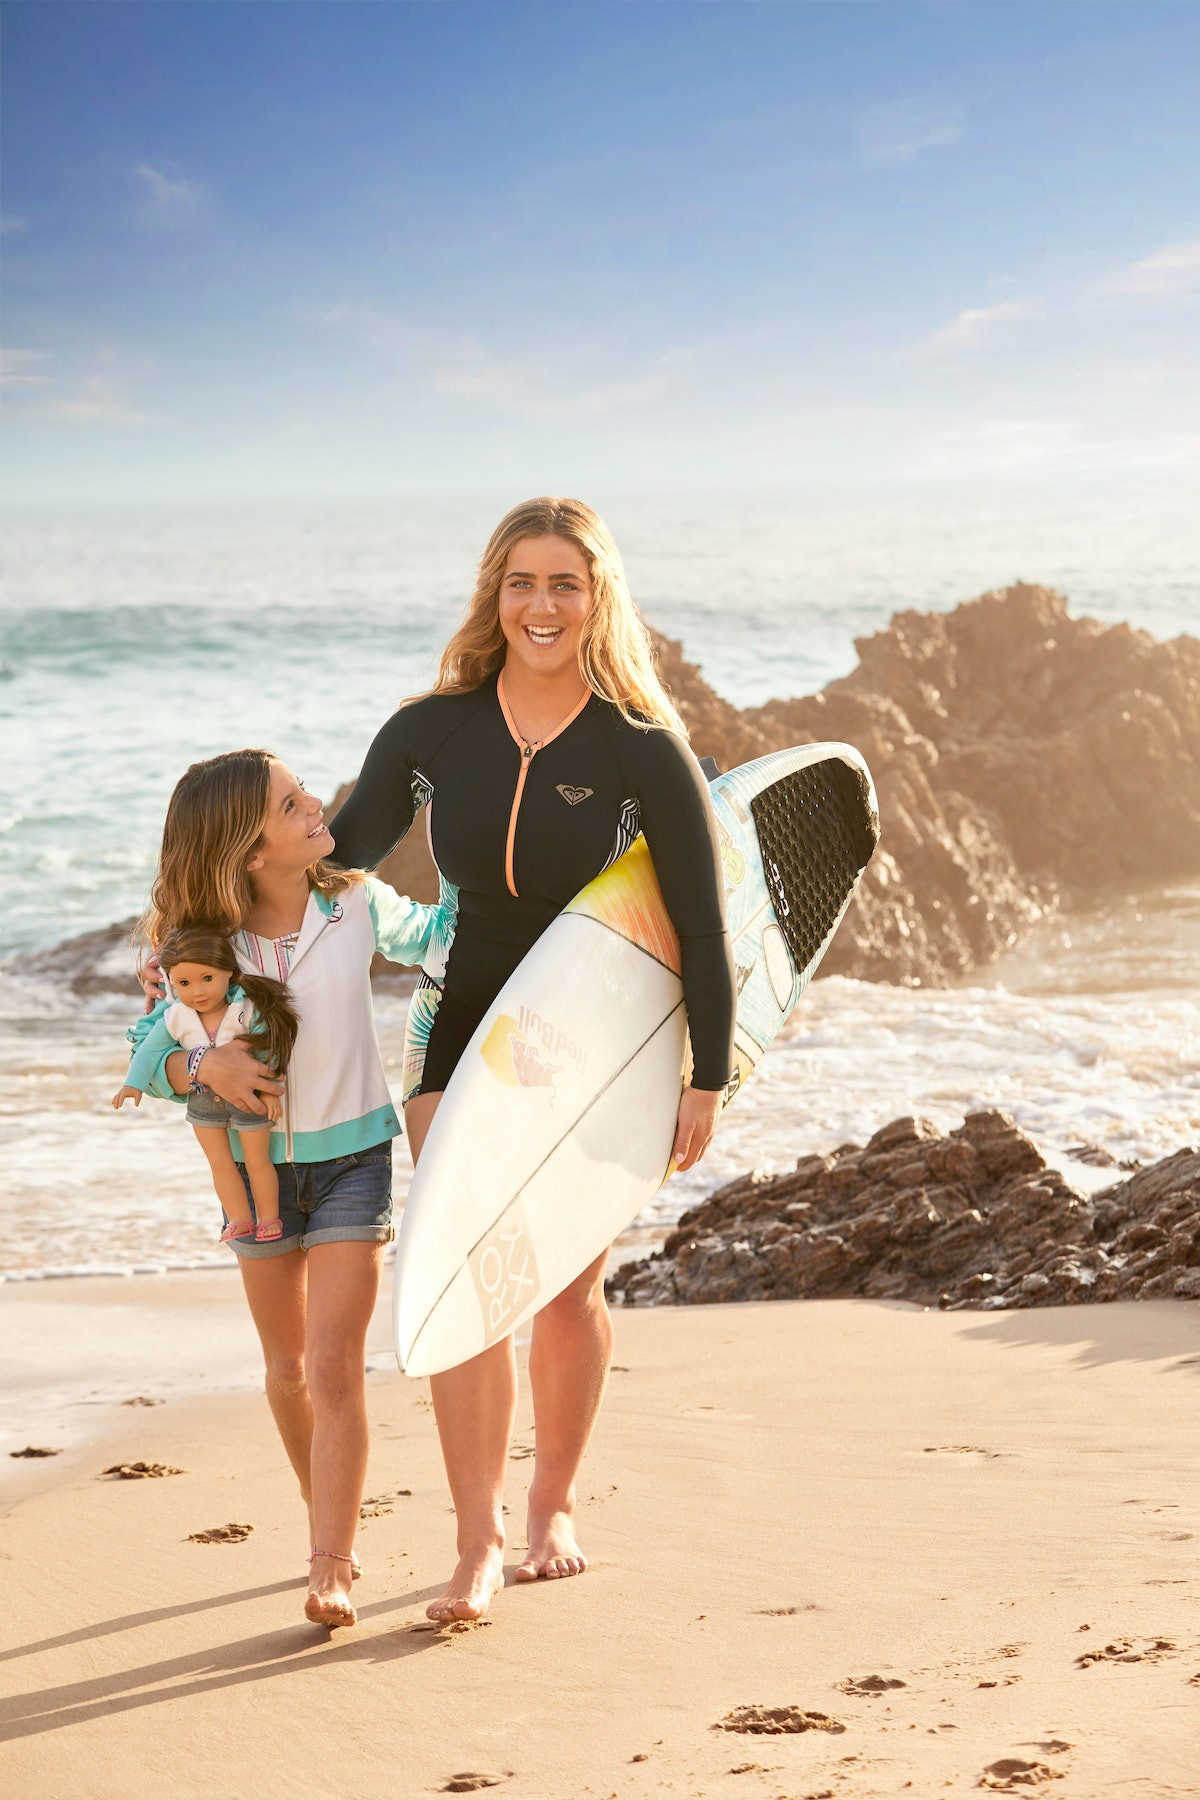 Olympic surfer Caroline Marks and sister walk on the beach with American Girl doll Joss Kendrick and a surfboard